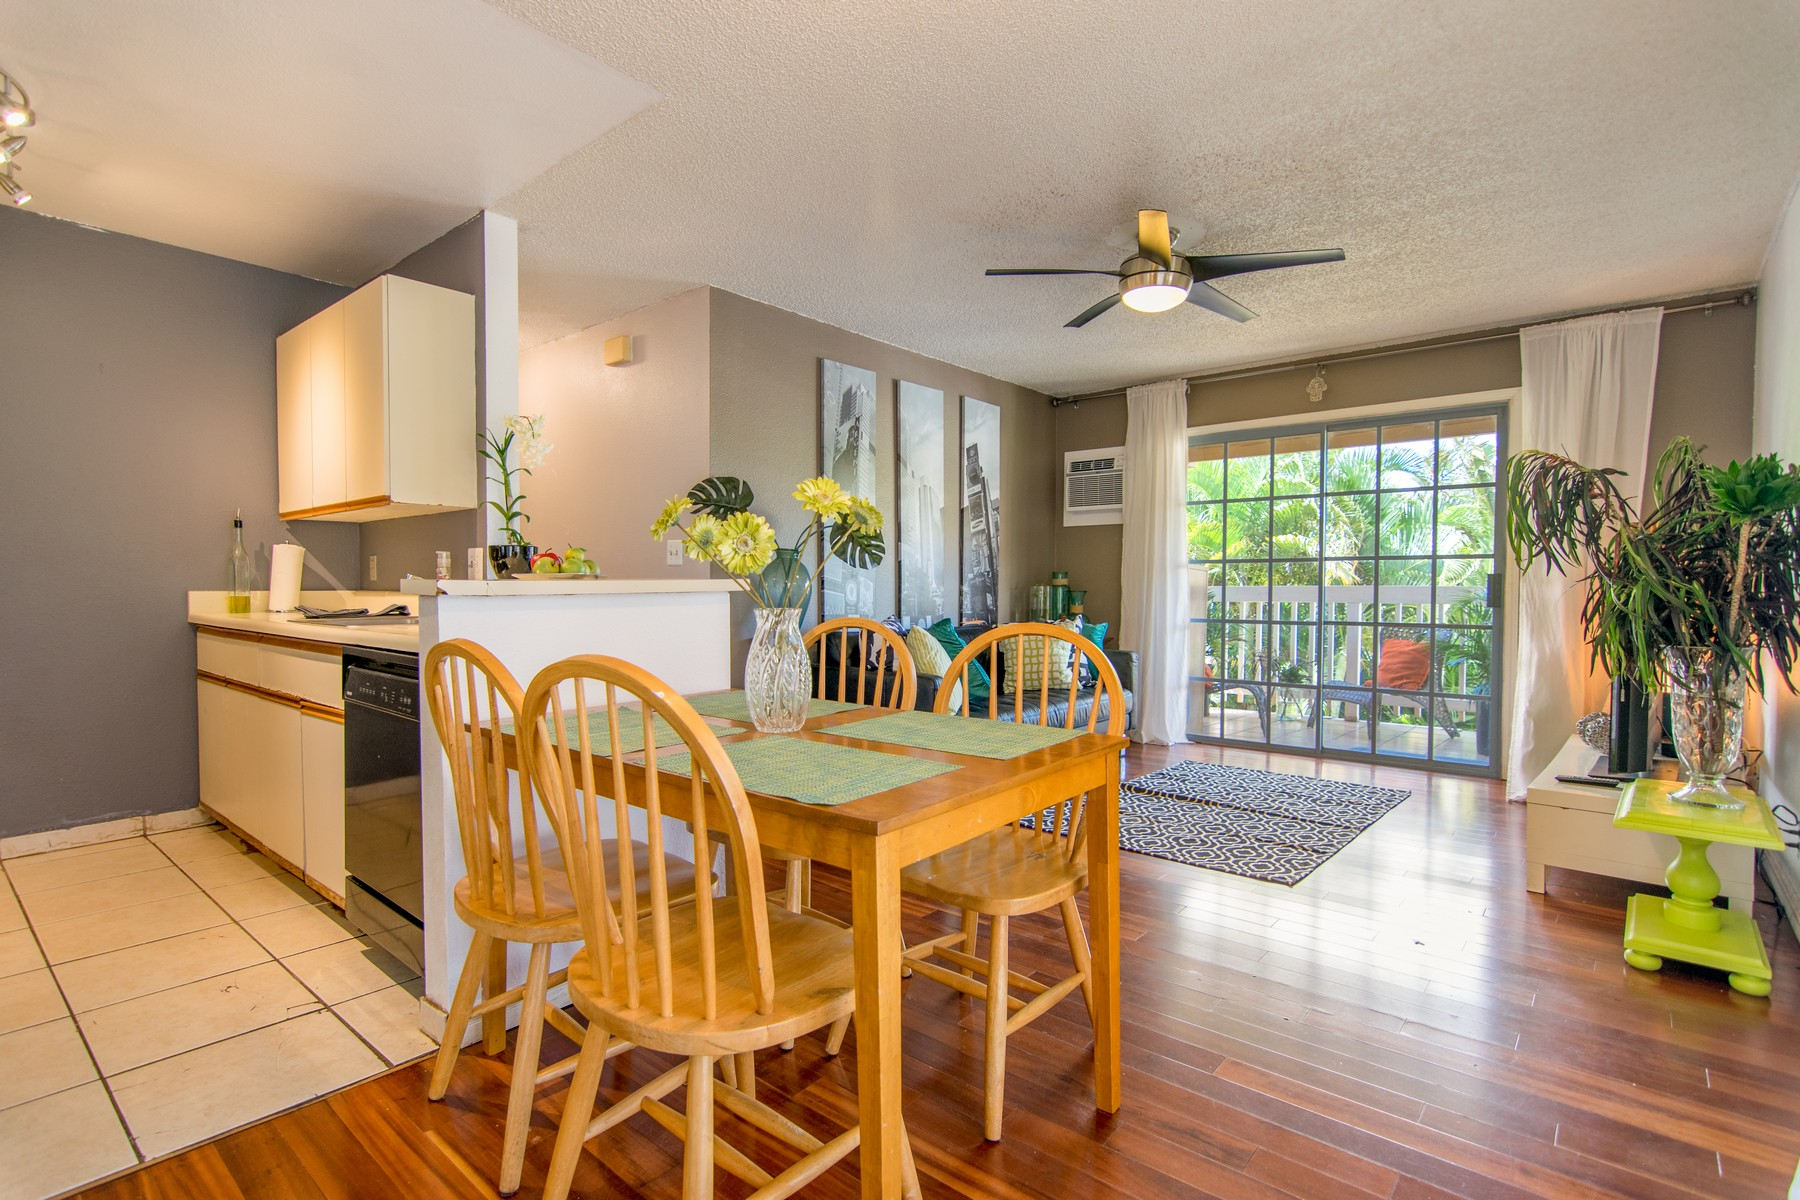 Condomínio para Venda às Upgraded Entry Level Condo 140 Uwapo Road, Kihei Villages 34-203 Kihei, Havaí 96753 Estados Unidos